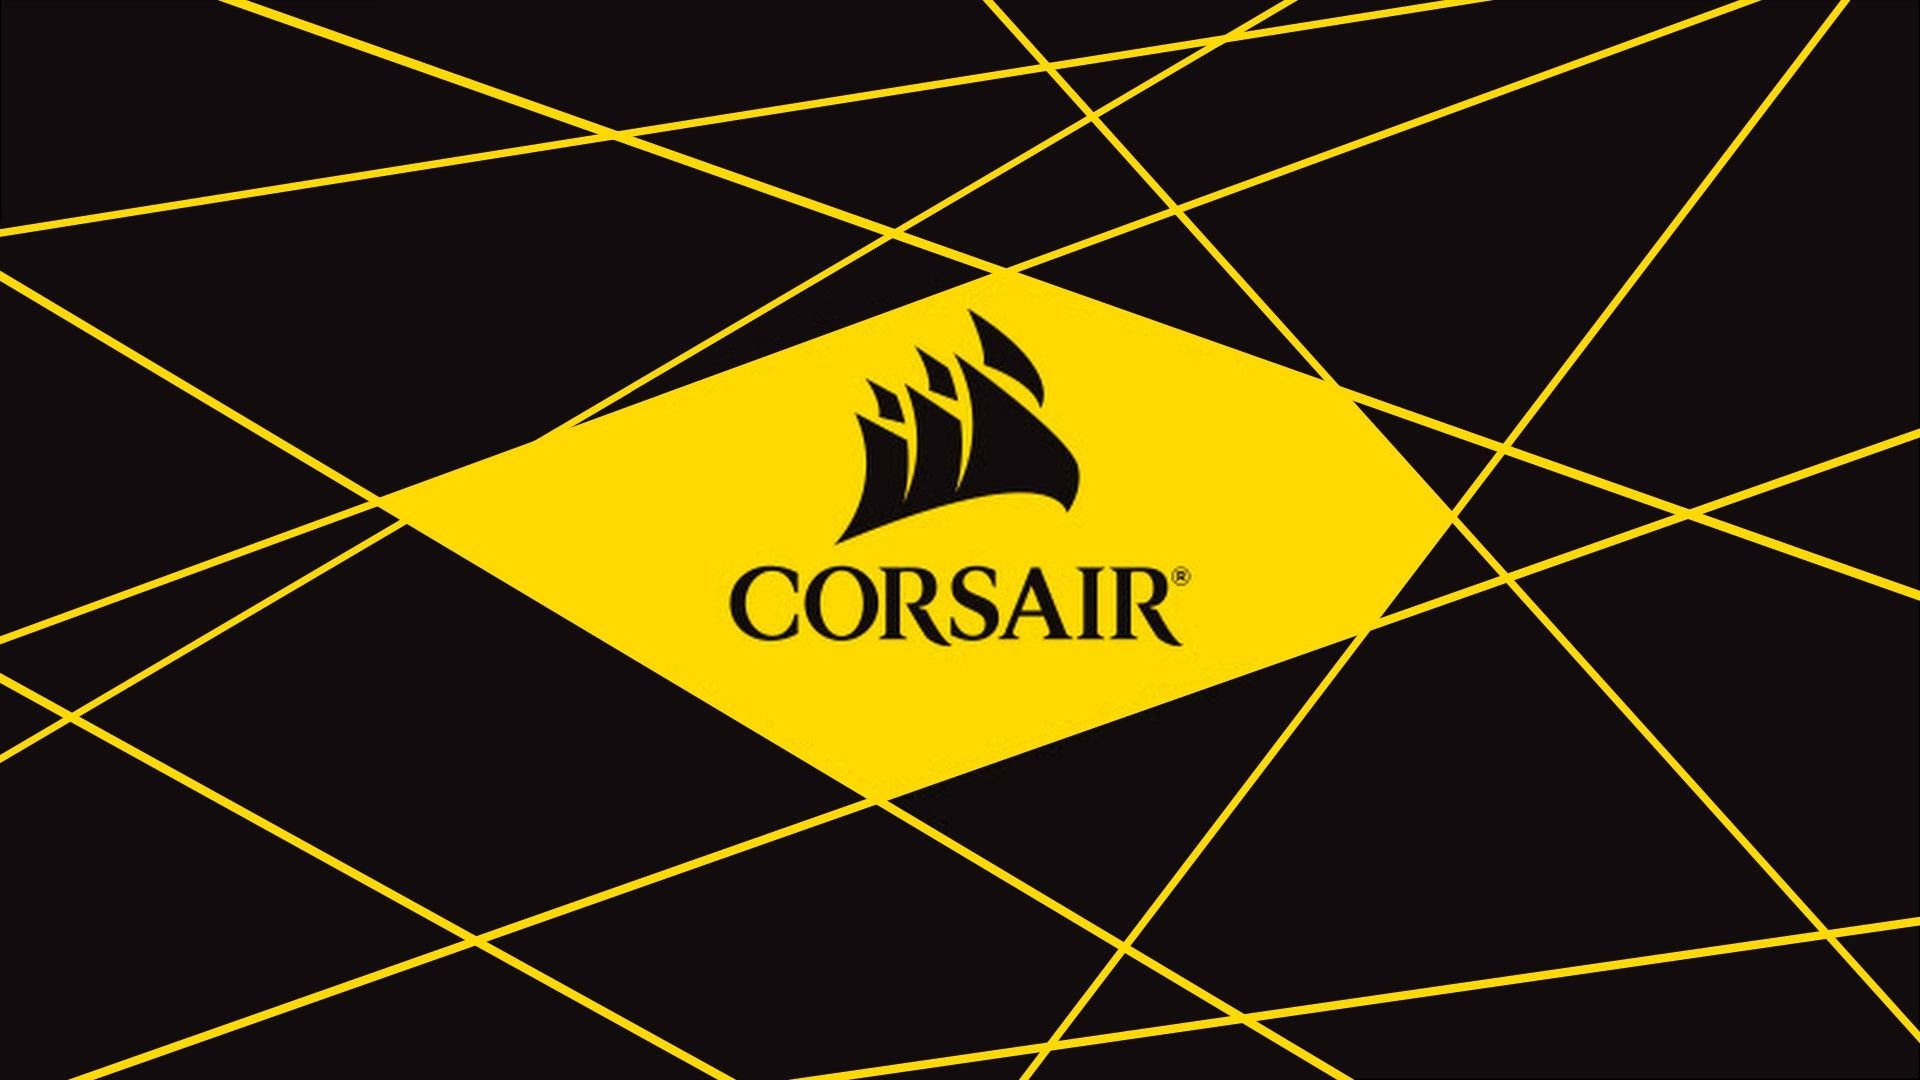 4k Corsair Wallpapers Top Free 4k Corsair Backgrounds Wallpaperaccess